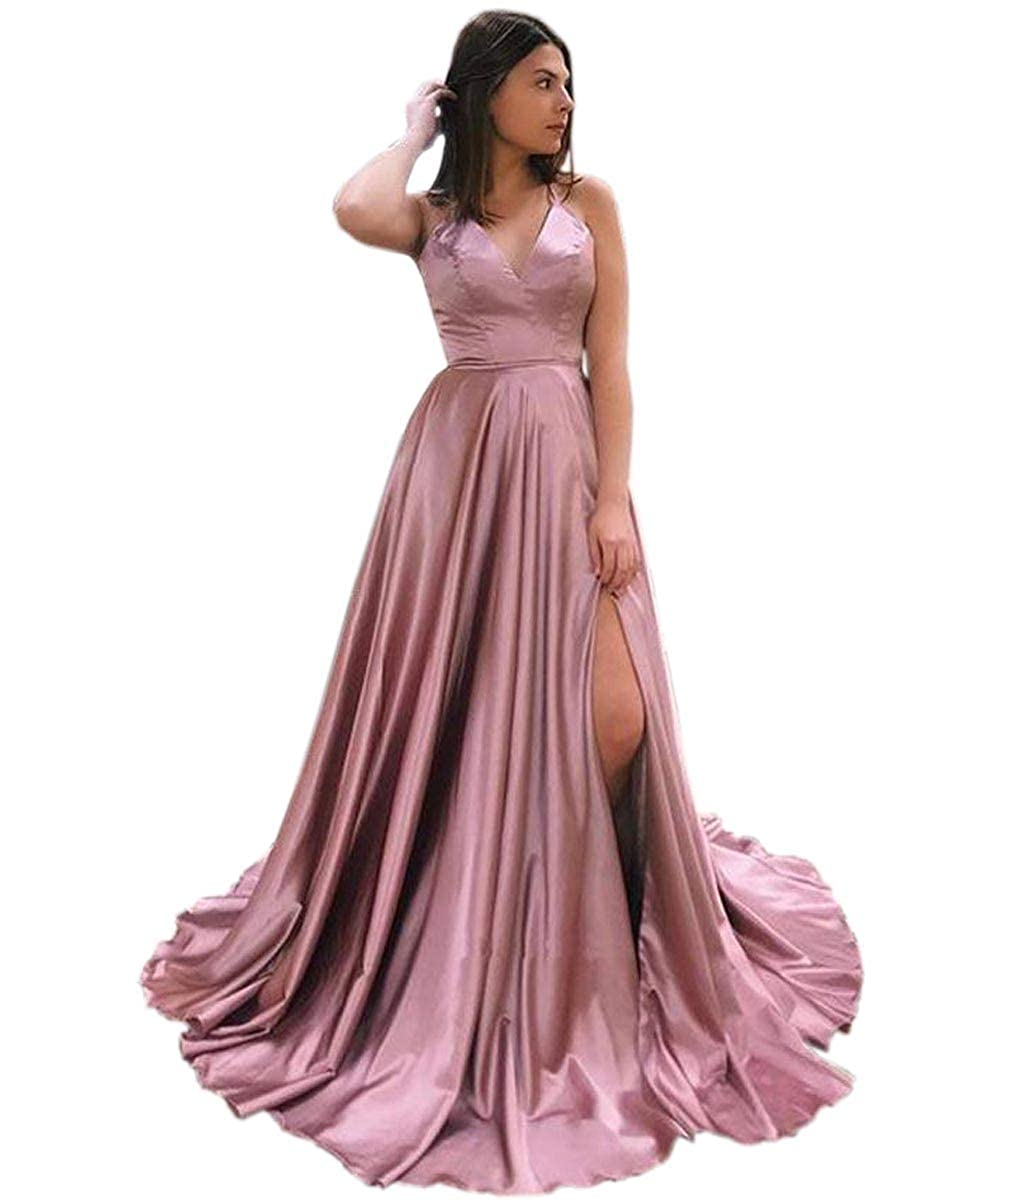 bluesh Pink Mauwey Halter Neck Satin Prom Dress Split with Pockets Evening Gown Long Maxi for Women Formal